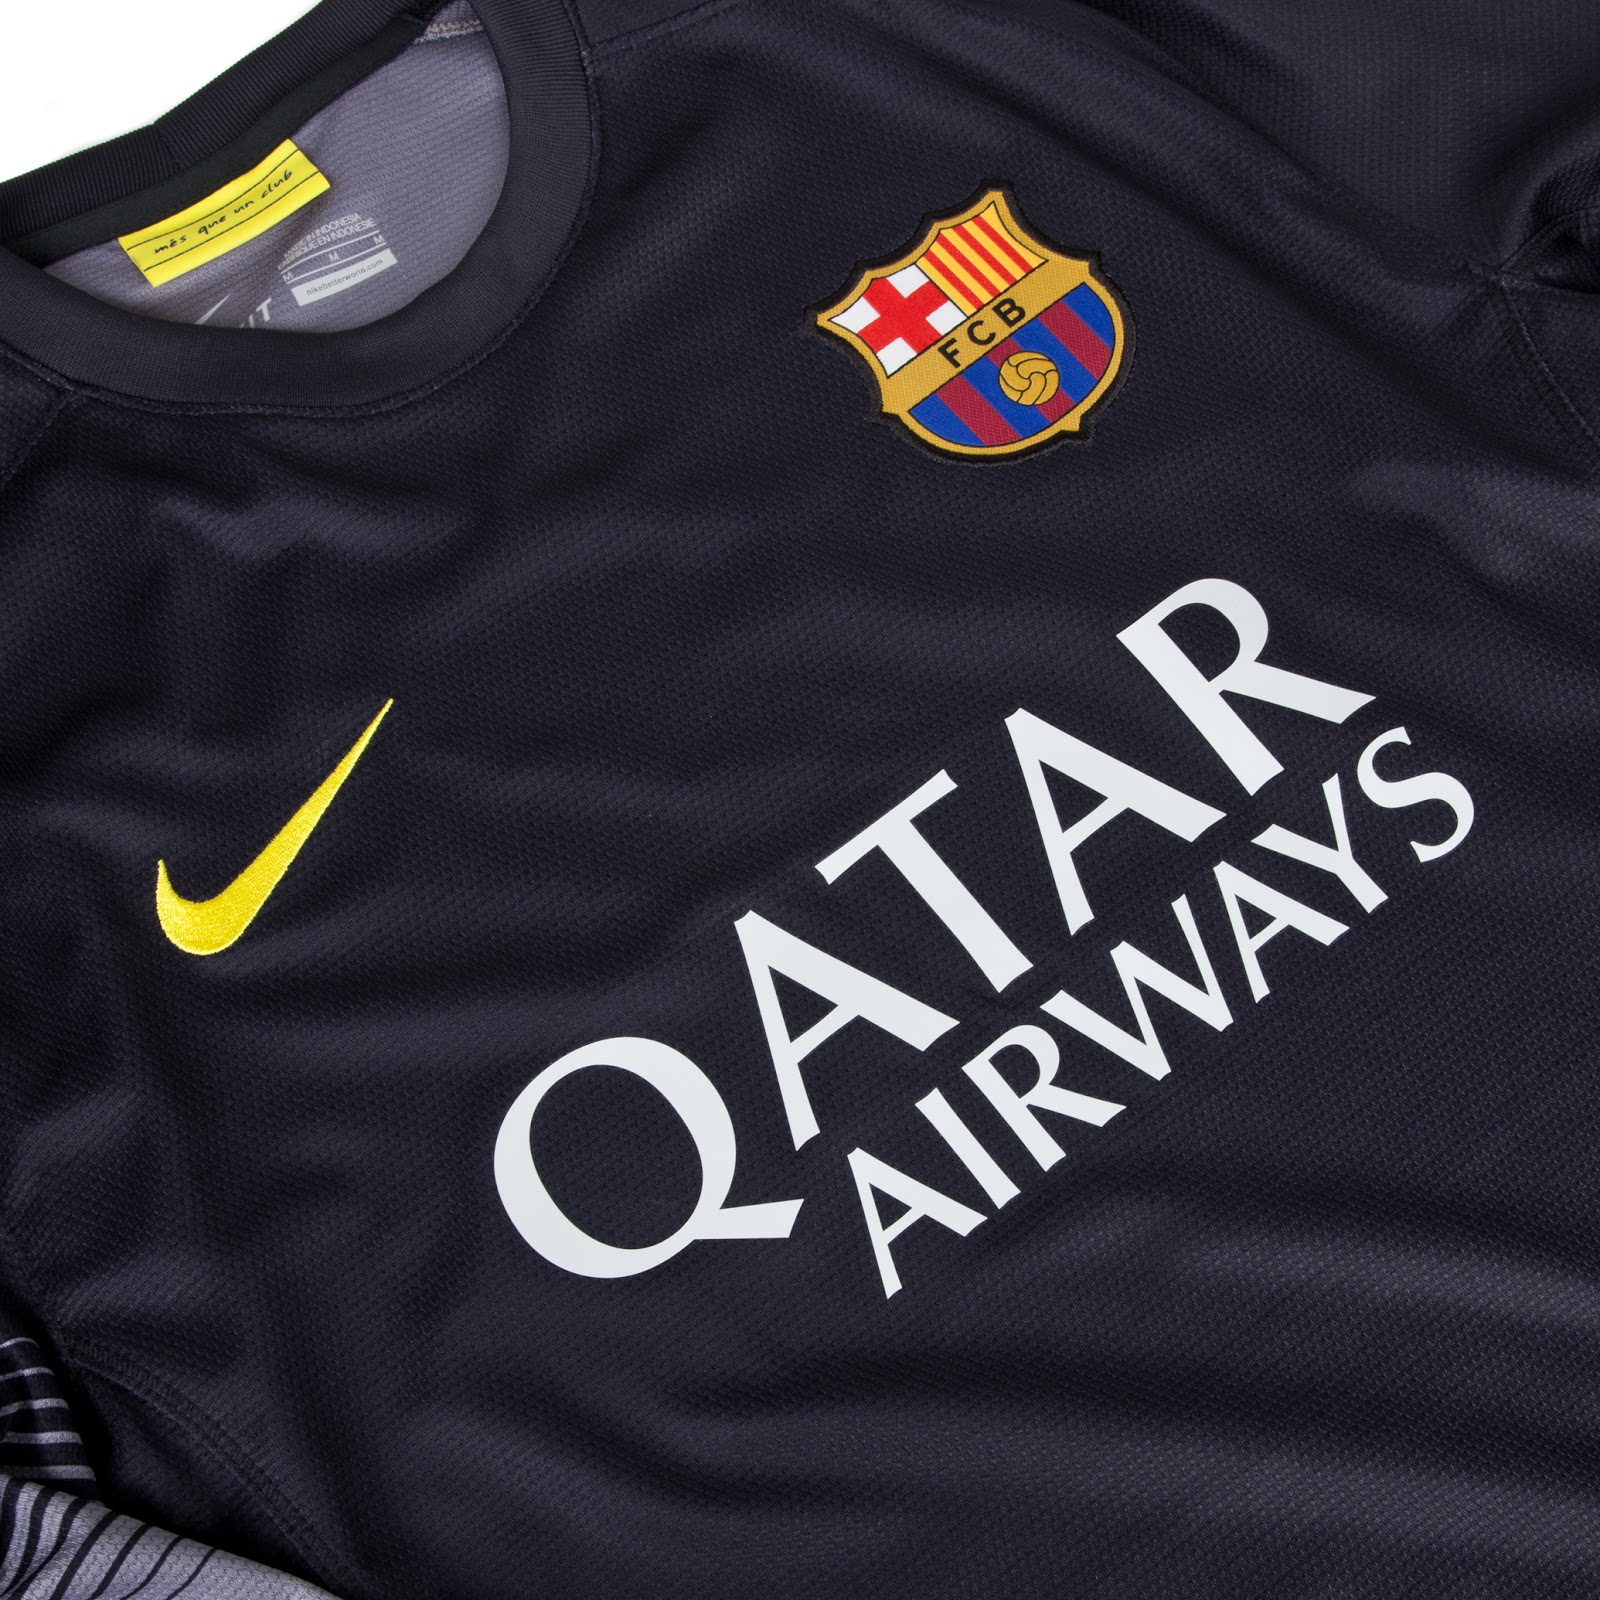 e5bb71e1aa5 The Barcelona 13-14 Goalkeeper Home Shirt is black and features the same  fading stripes on the sleeves as seen on the Barcelona 13-14 Home and Away  kits.